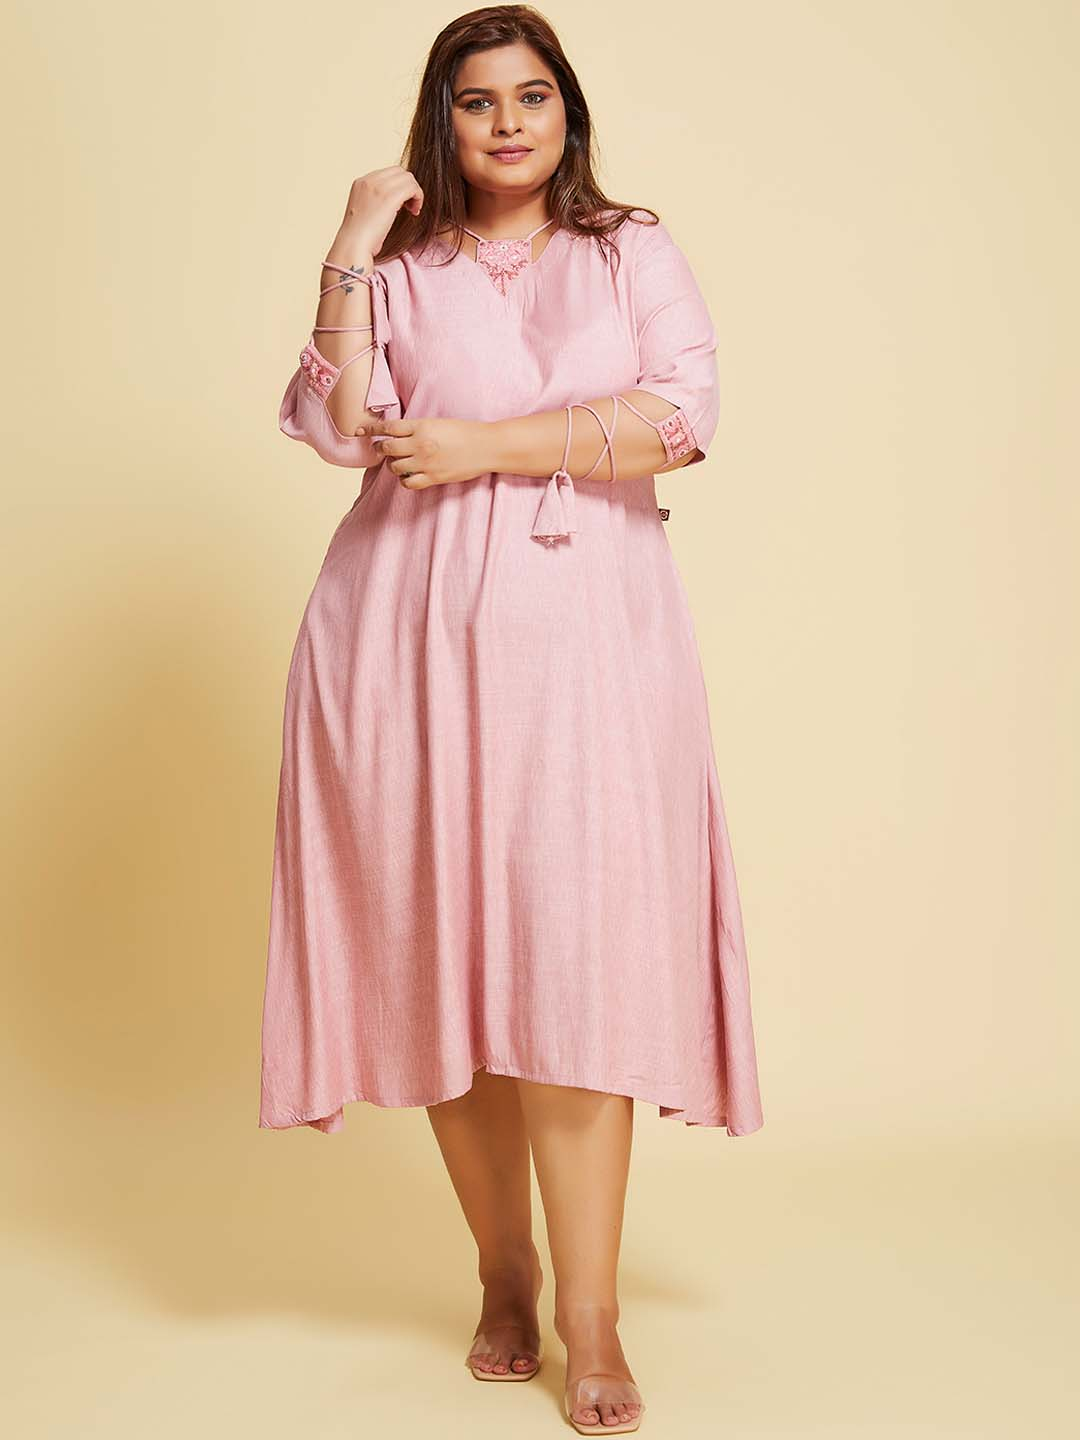 Pink Solid Cotton Viscose A-Line Dress Plus Size